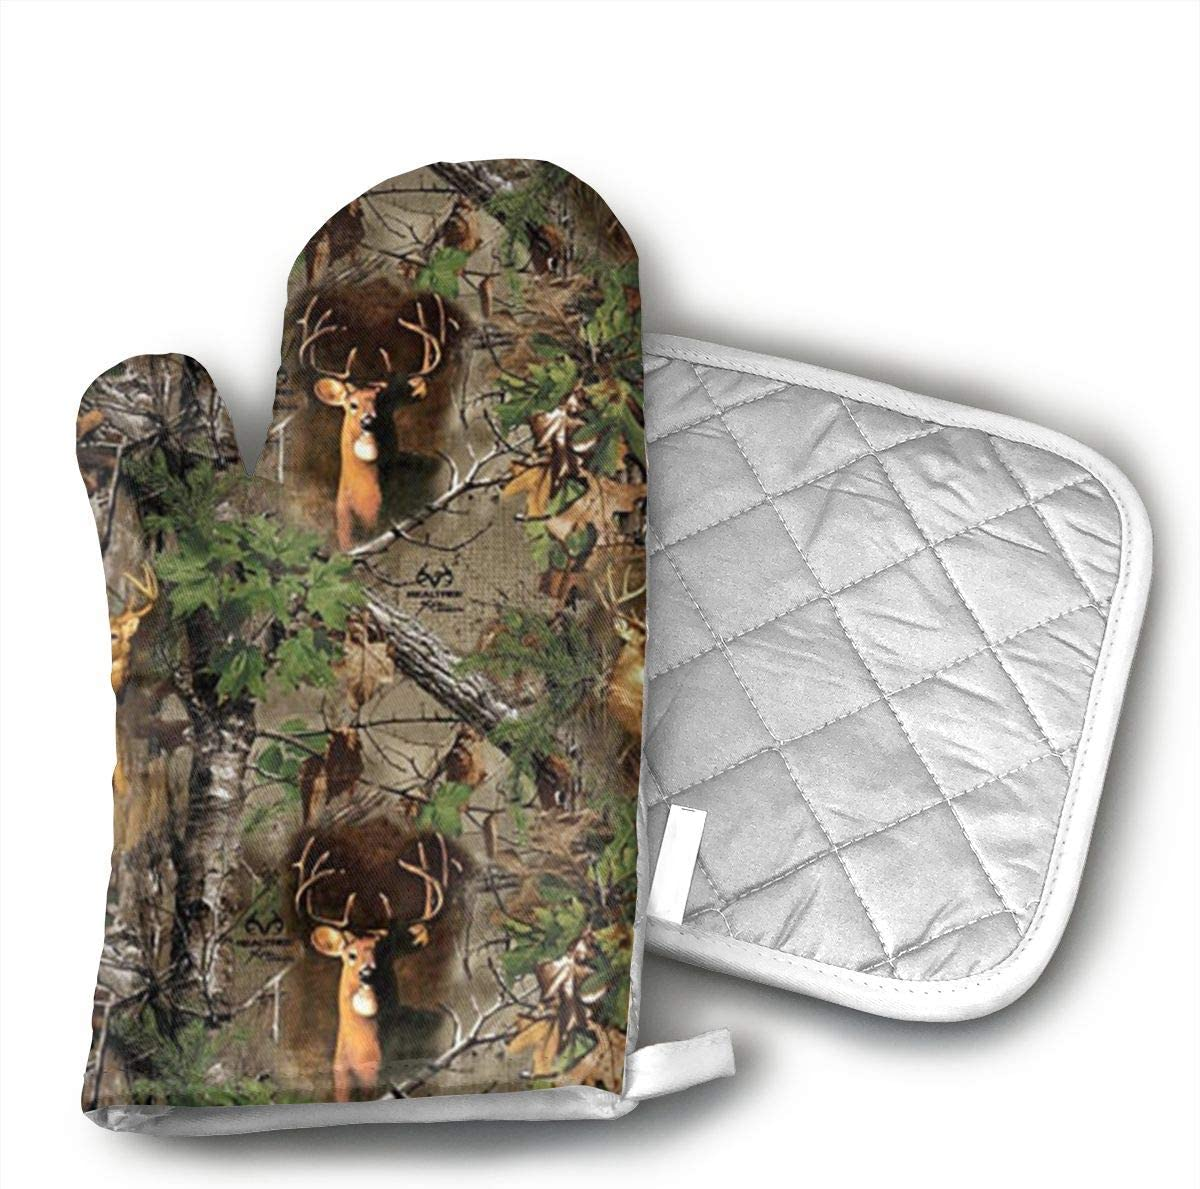 Star Blue Design Real Tree Camo Deer Turkey Woods Oven Mitts & Heat Resistant Pot Holder - with Polyester Cotton Non-Slip Grip, Best Used As Baking, Grilling, BBQ, Cooking, Kitchen Or Oven Gloves